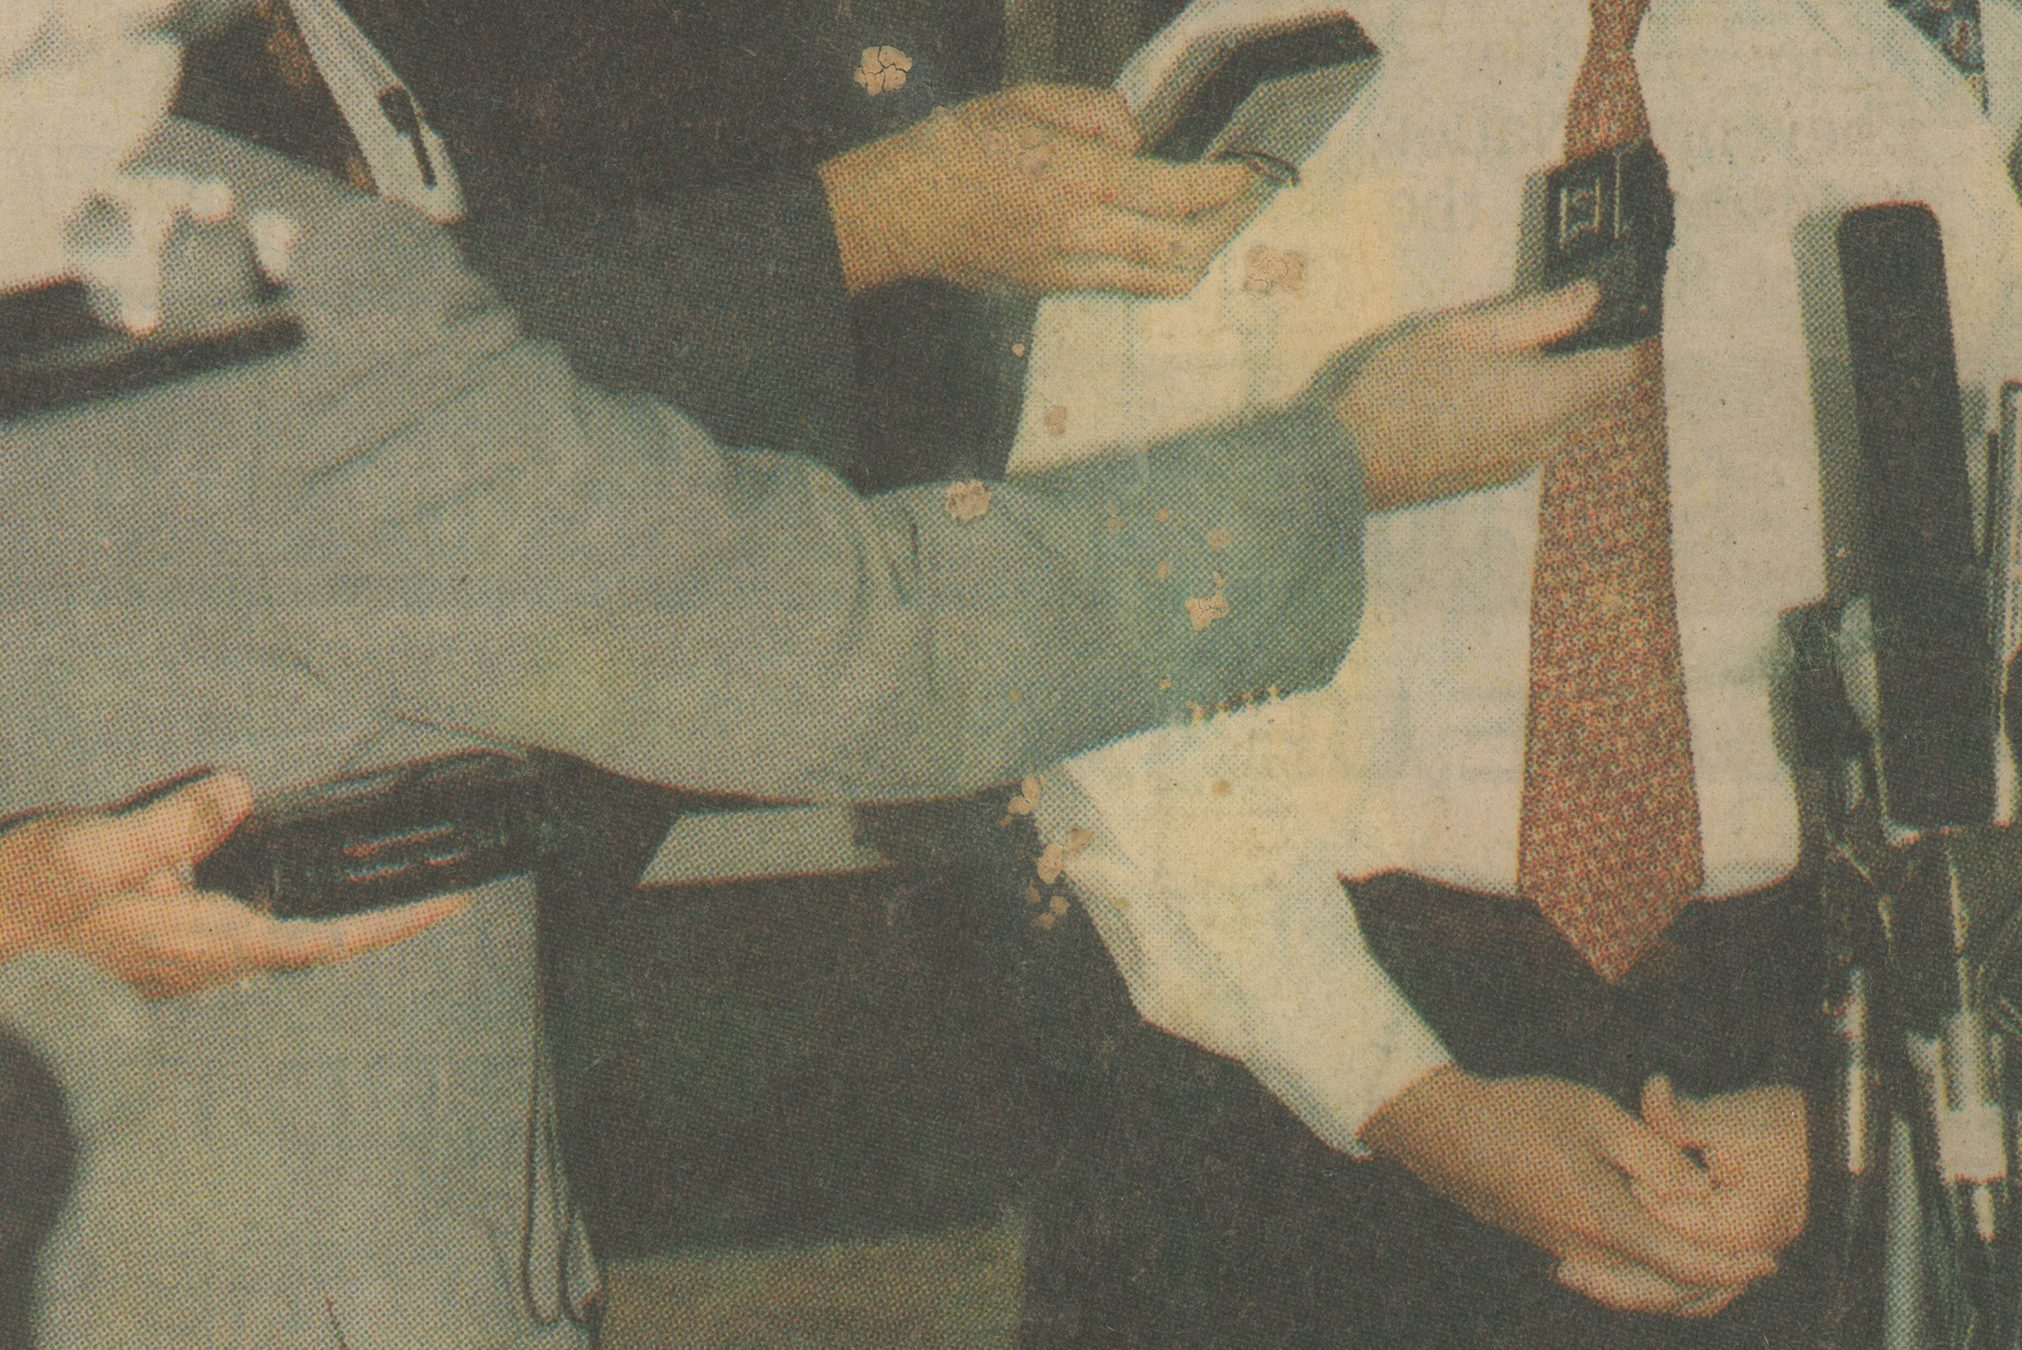 A screenshot of Untitled (Saturday, October 16, 1993) shows a weathered newspaper clipping of a figure dressed in a white shirt with red tie standing before microphones. Arms reach out from the left side of the shot with tape recorders and additional microphones preparing to record the speaker's voice.